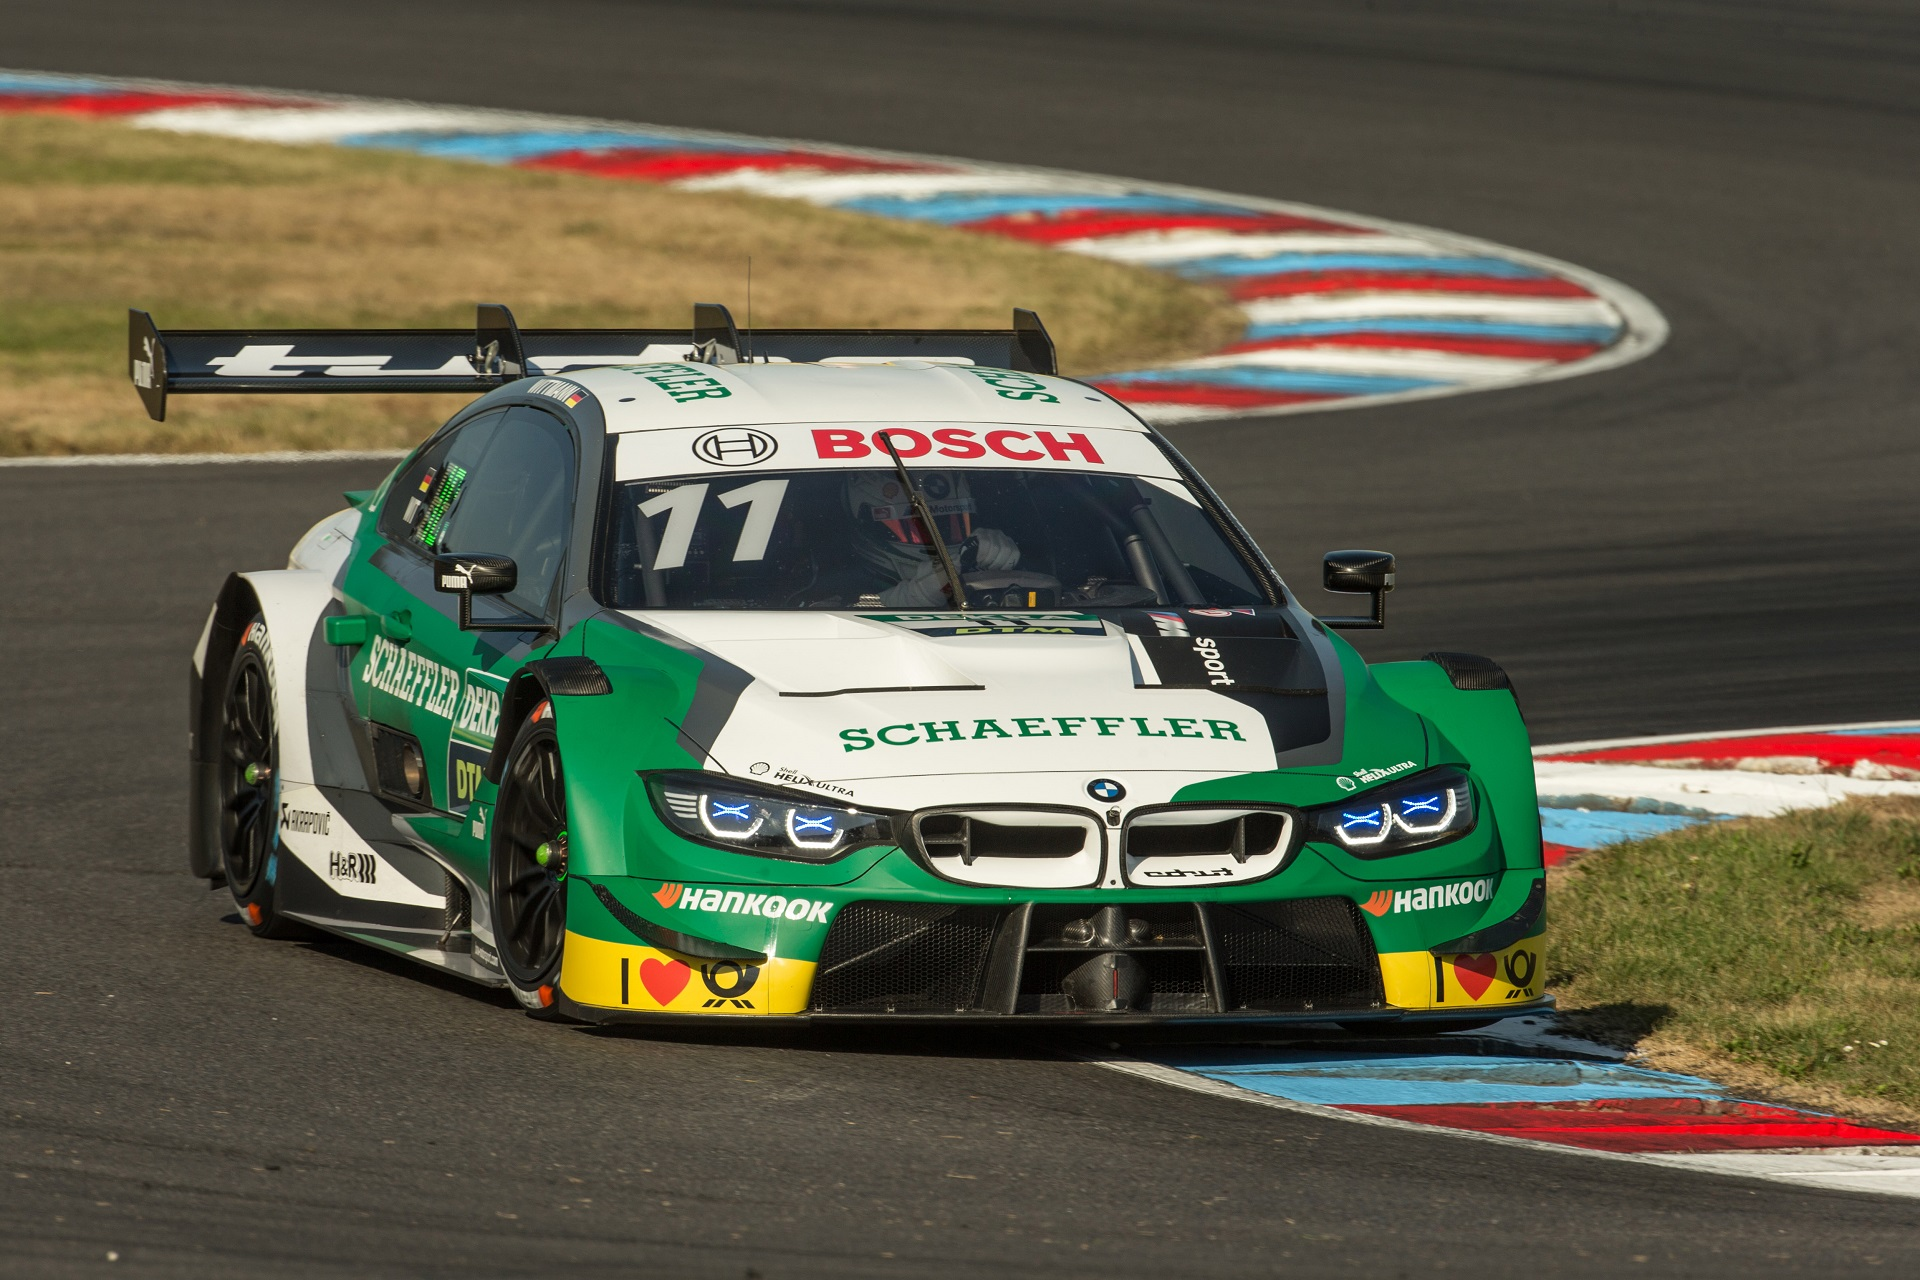 BMW M Heading to Nurburgring for Penultimate Stage of 2019 DTM